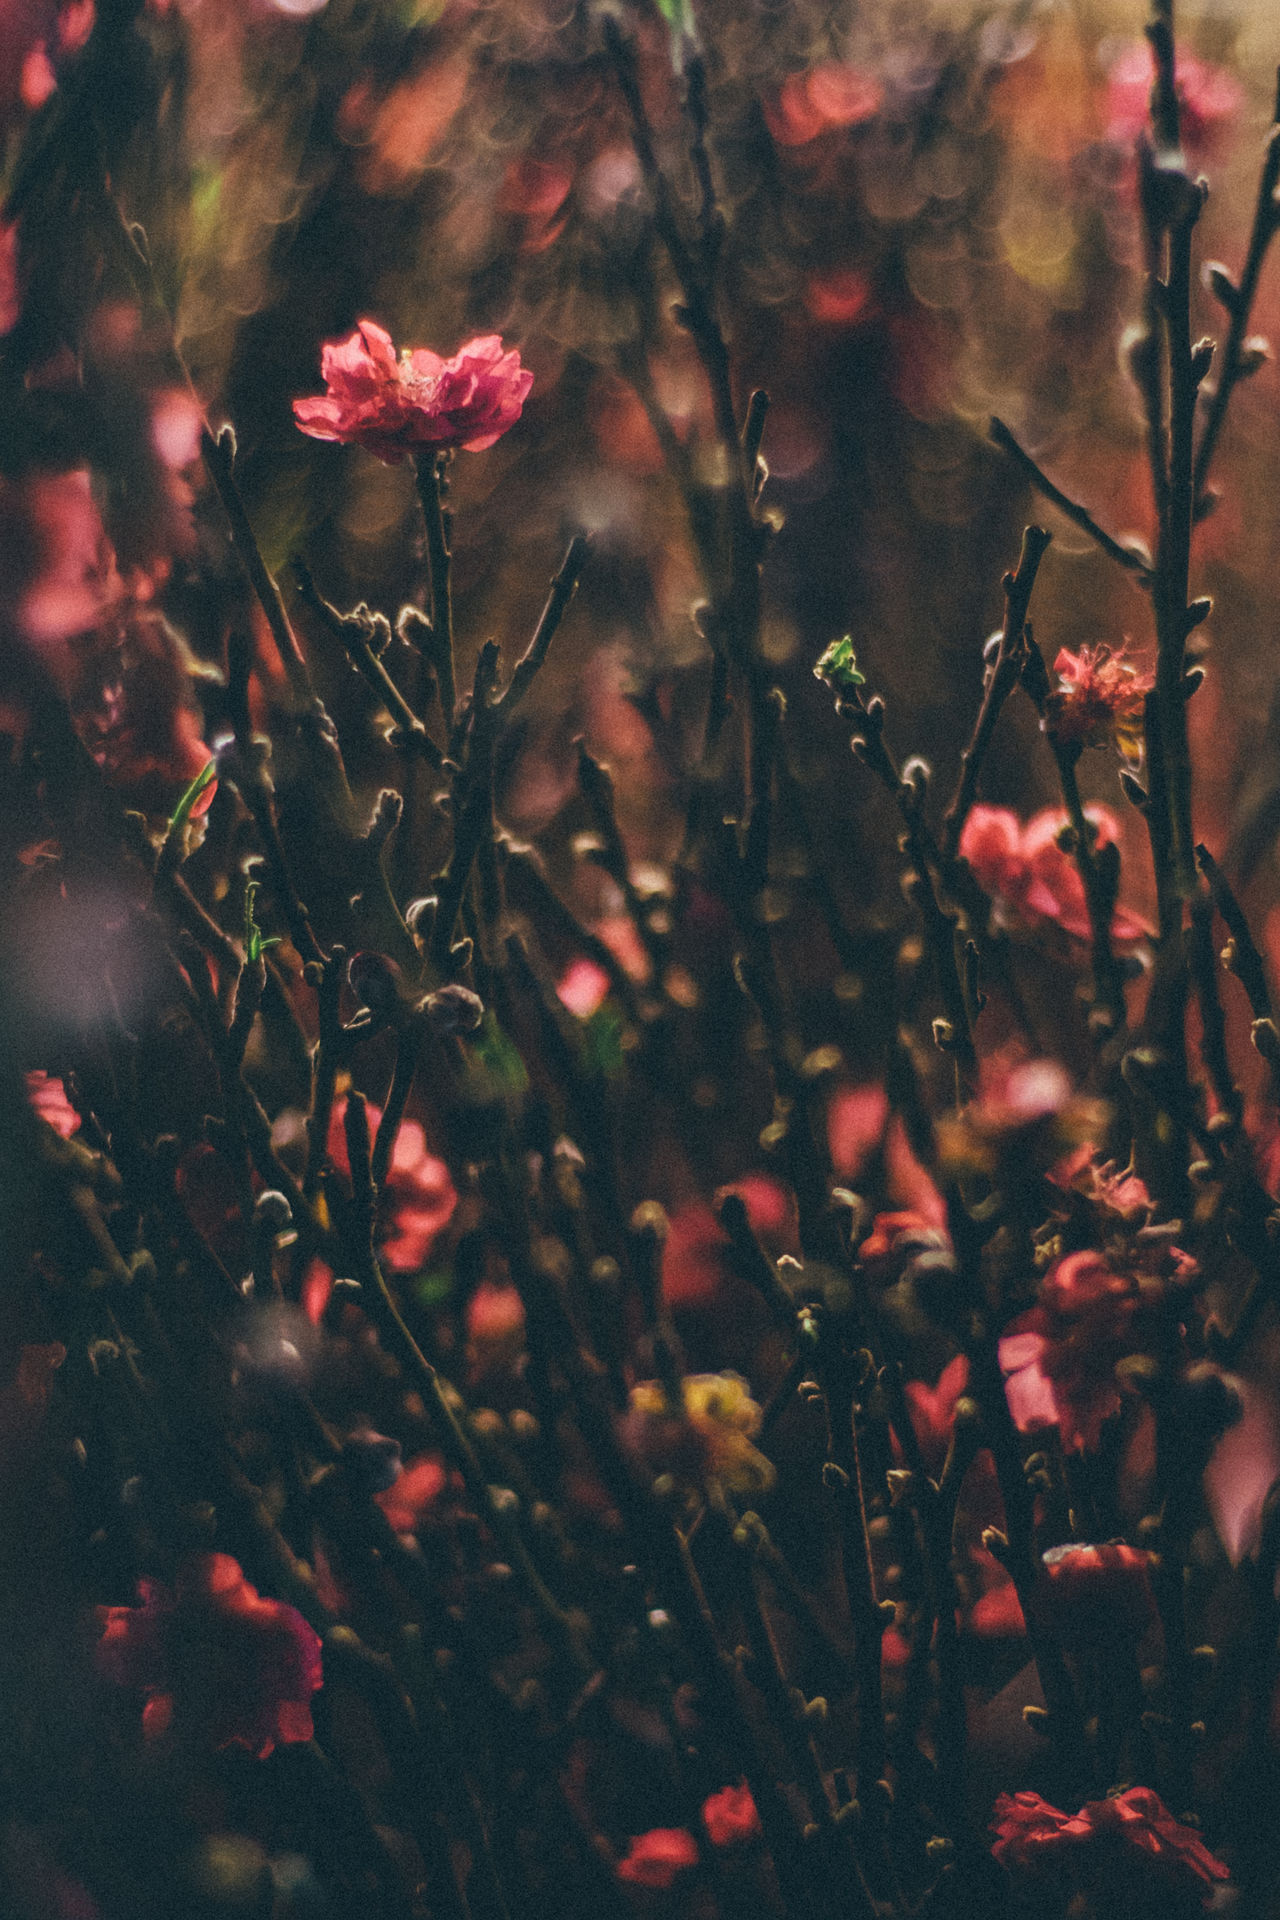 Beauty In Nature Close-up Day Flower Freshness Growth Leaf Nature No People Outdoors Plant Tree Water